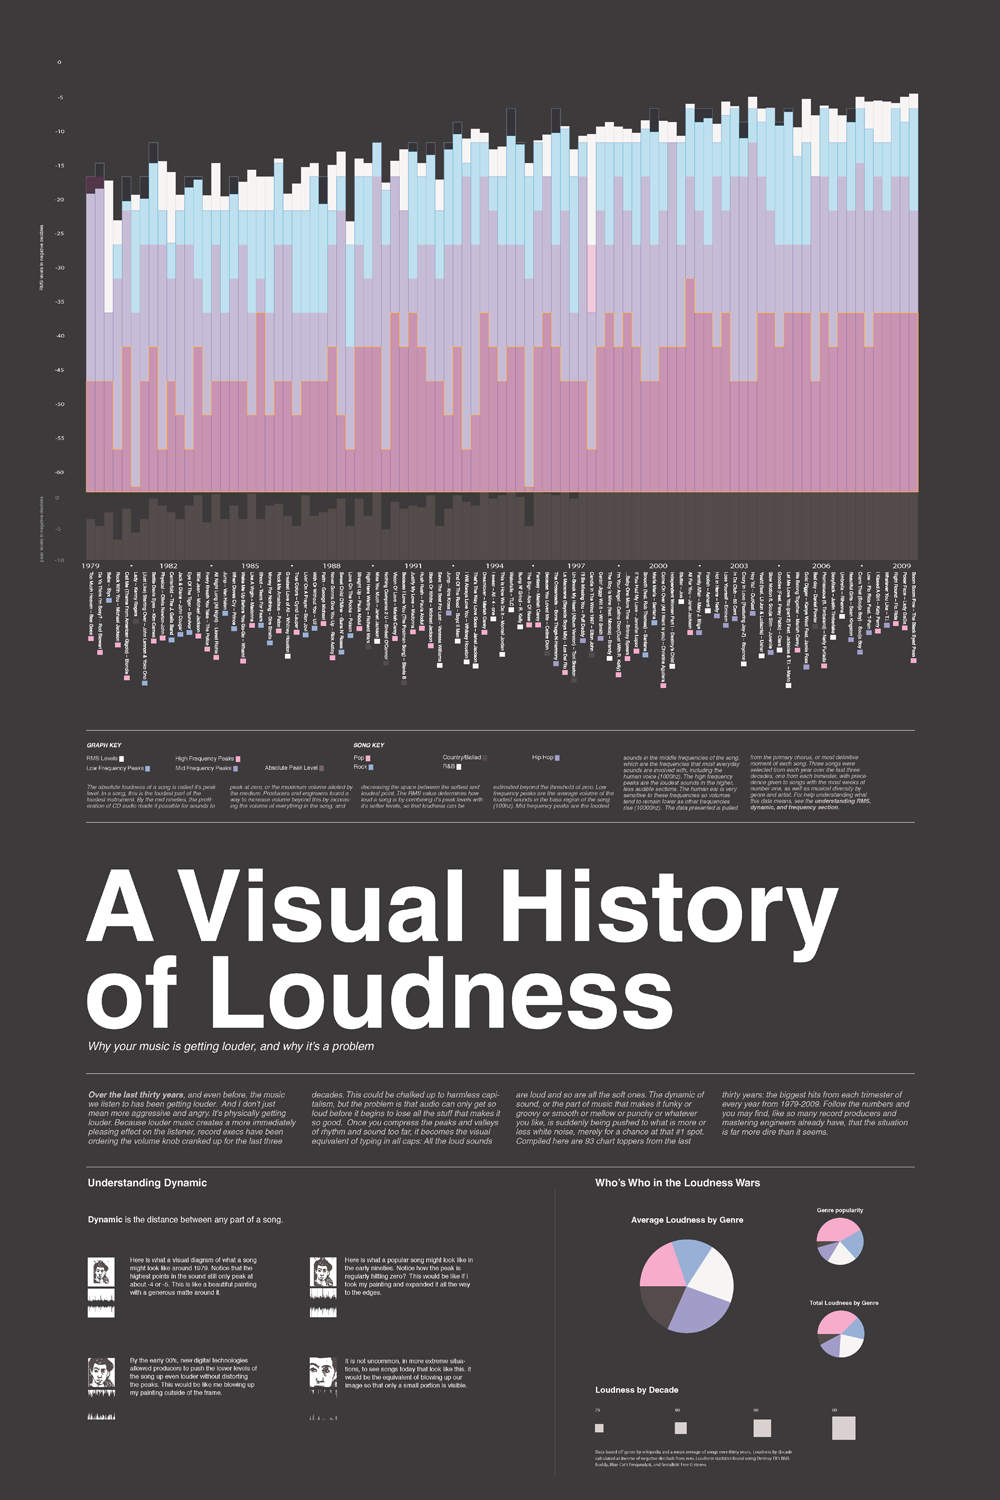 A Visual History of Loudness by Chris Clark